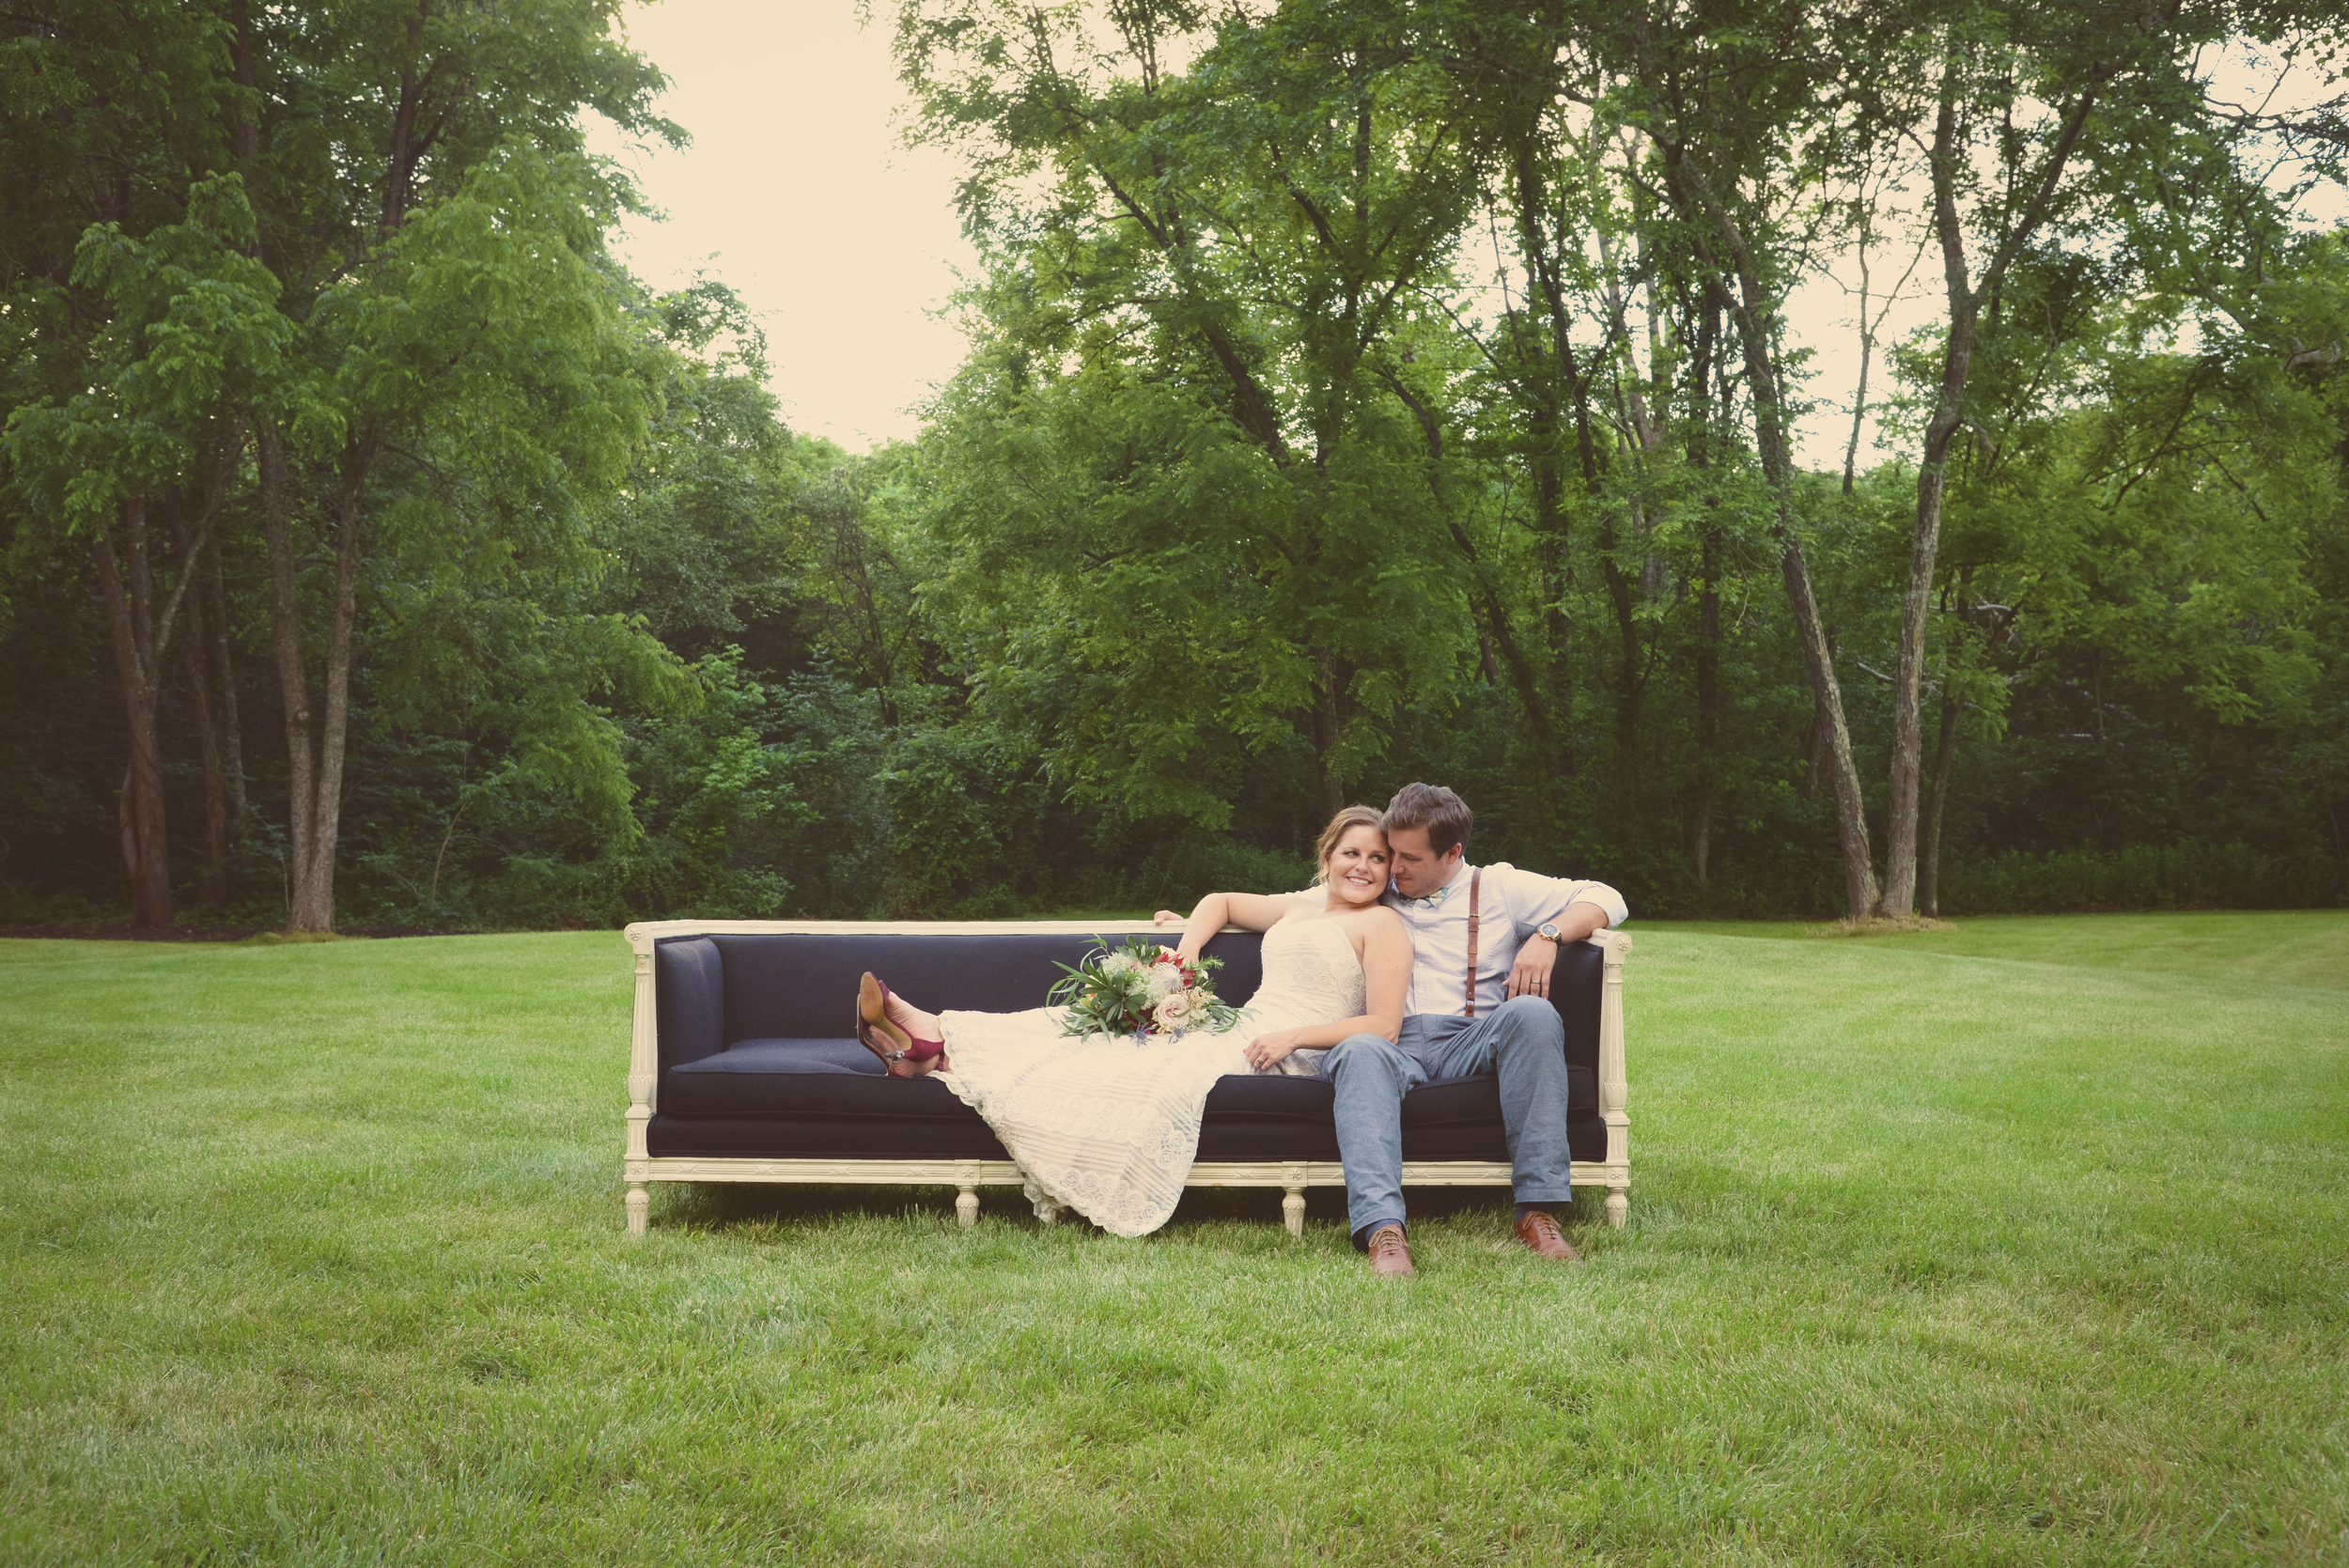 st louis wedding lounge couple photo just married